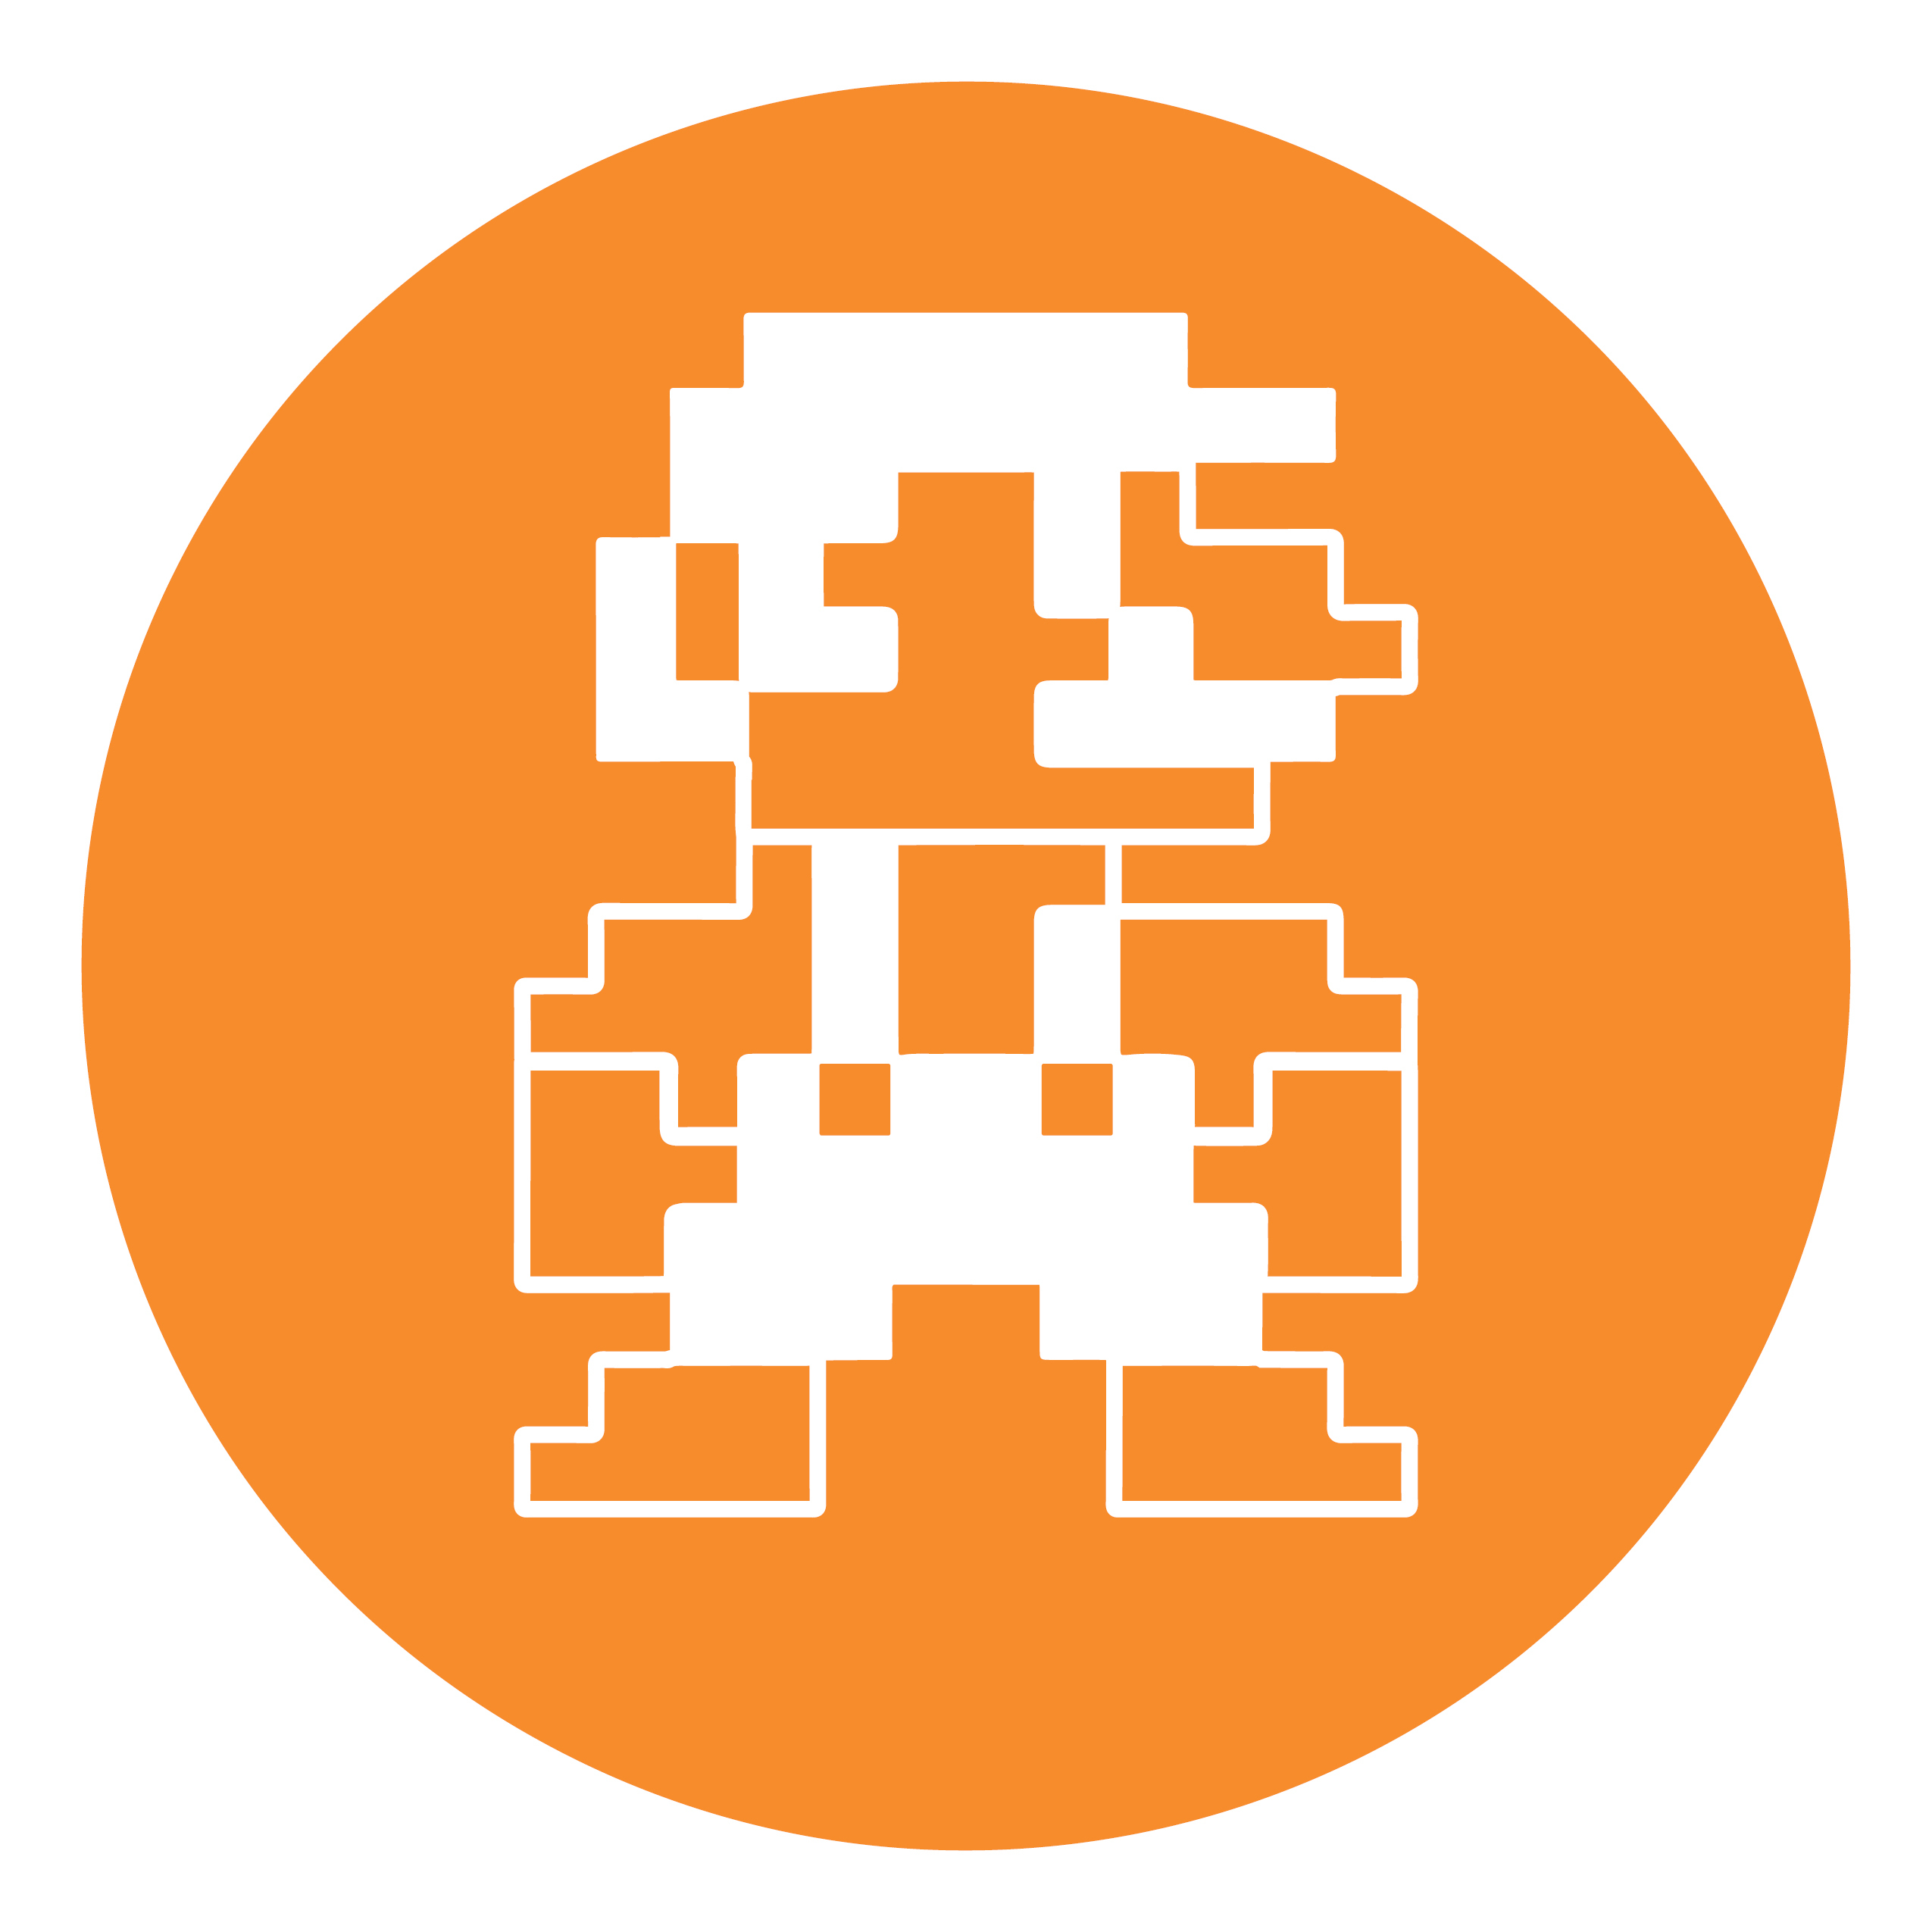 An orange circle contains an image of an 8-bit game character